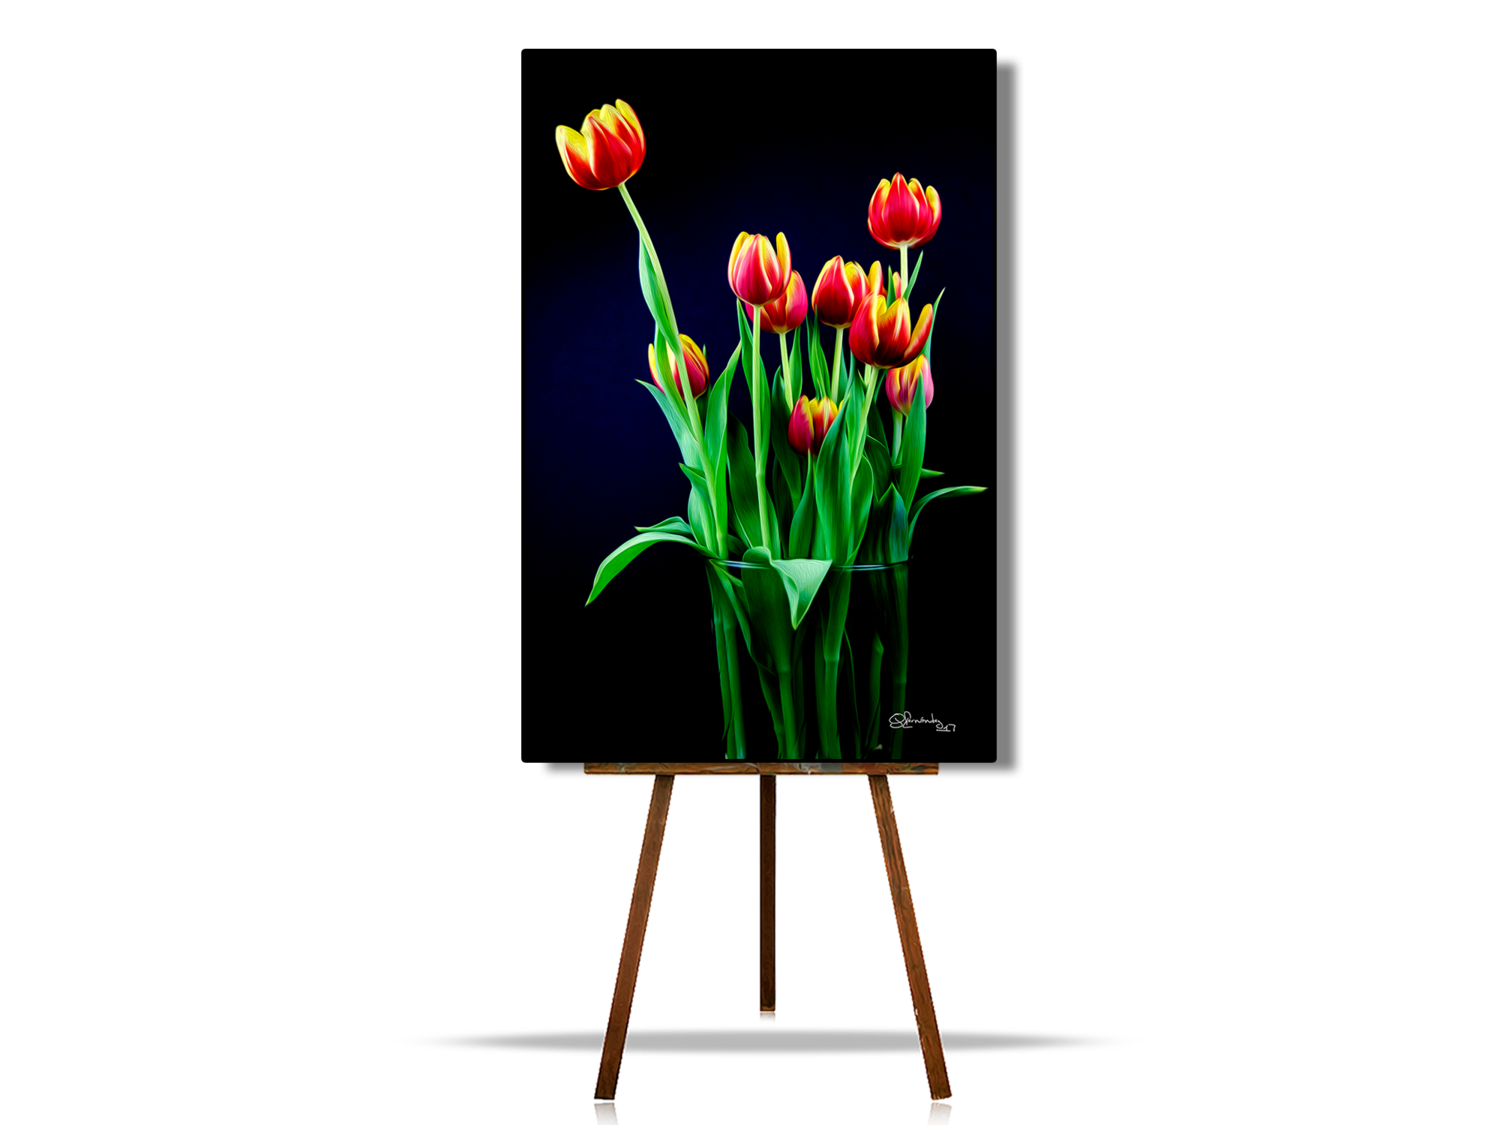 Tulips Flowers, Flower Digital Art, Vivid Artwork, Modern Interior Art